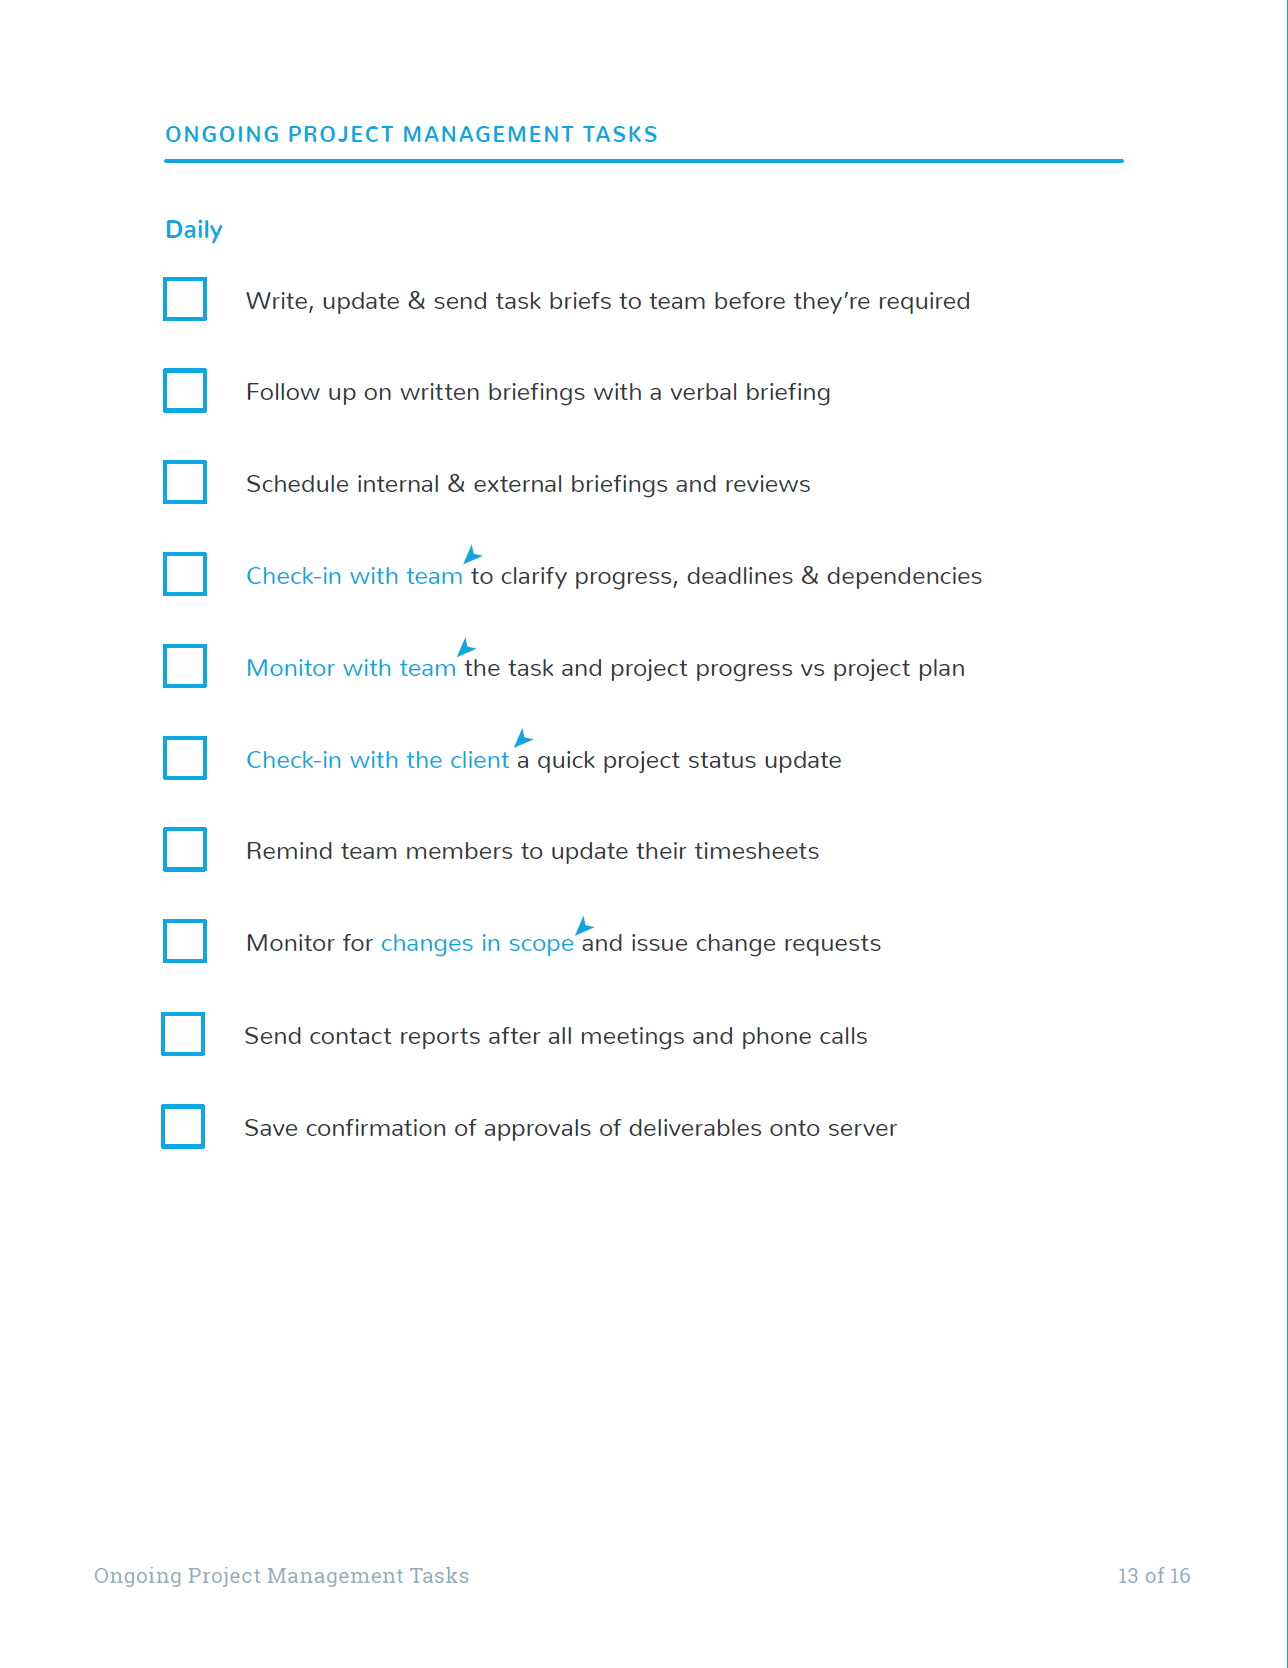 Graphics Of Ultimate Project Checklist Ongoing Tasks